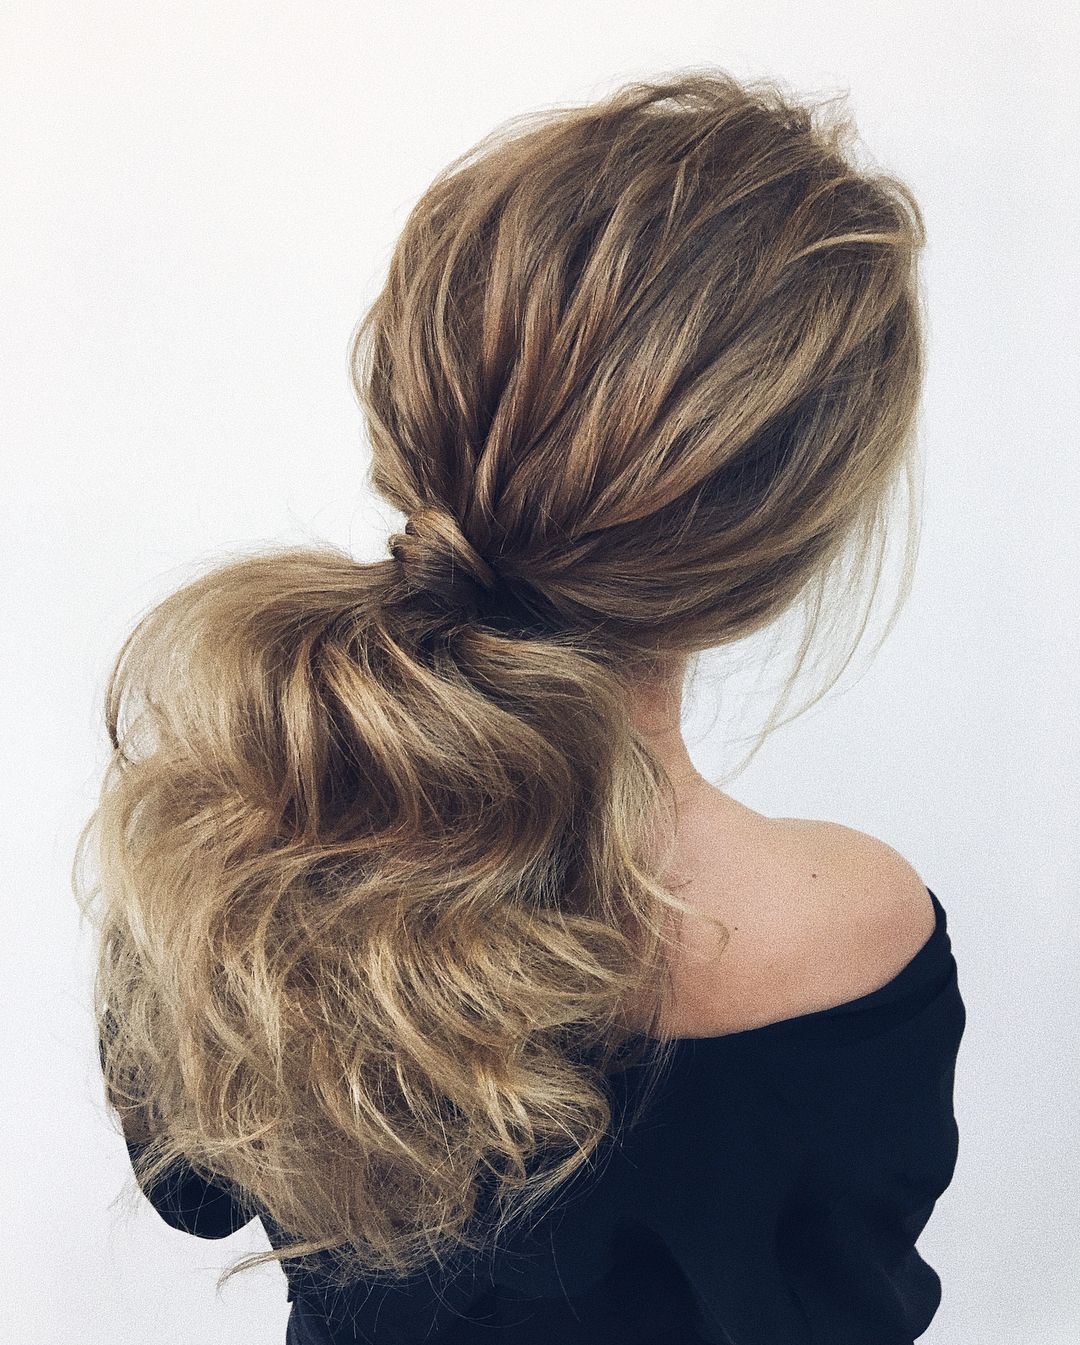 Gorgeous Ponytail Hairstyle Ideas That Will Leave You in FAB ...